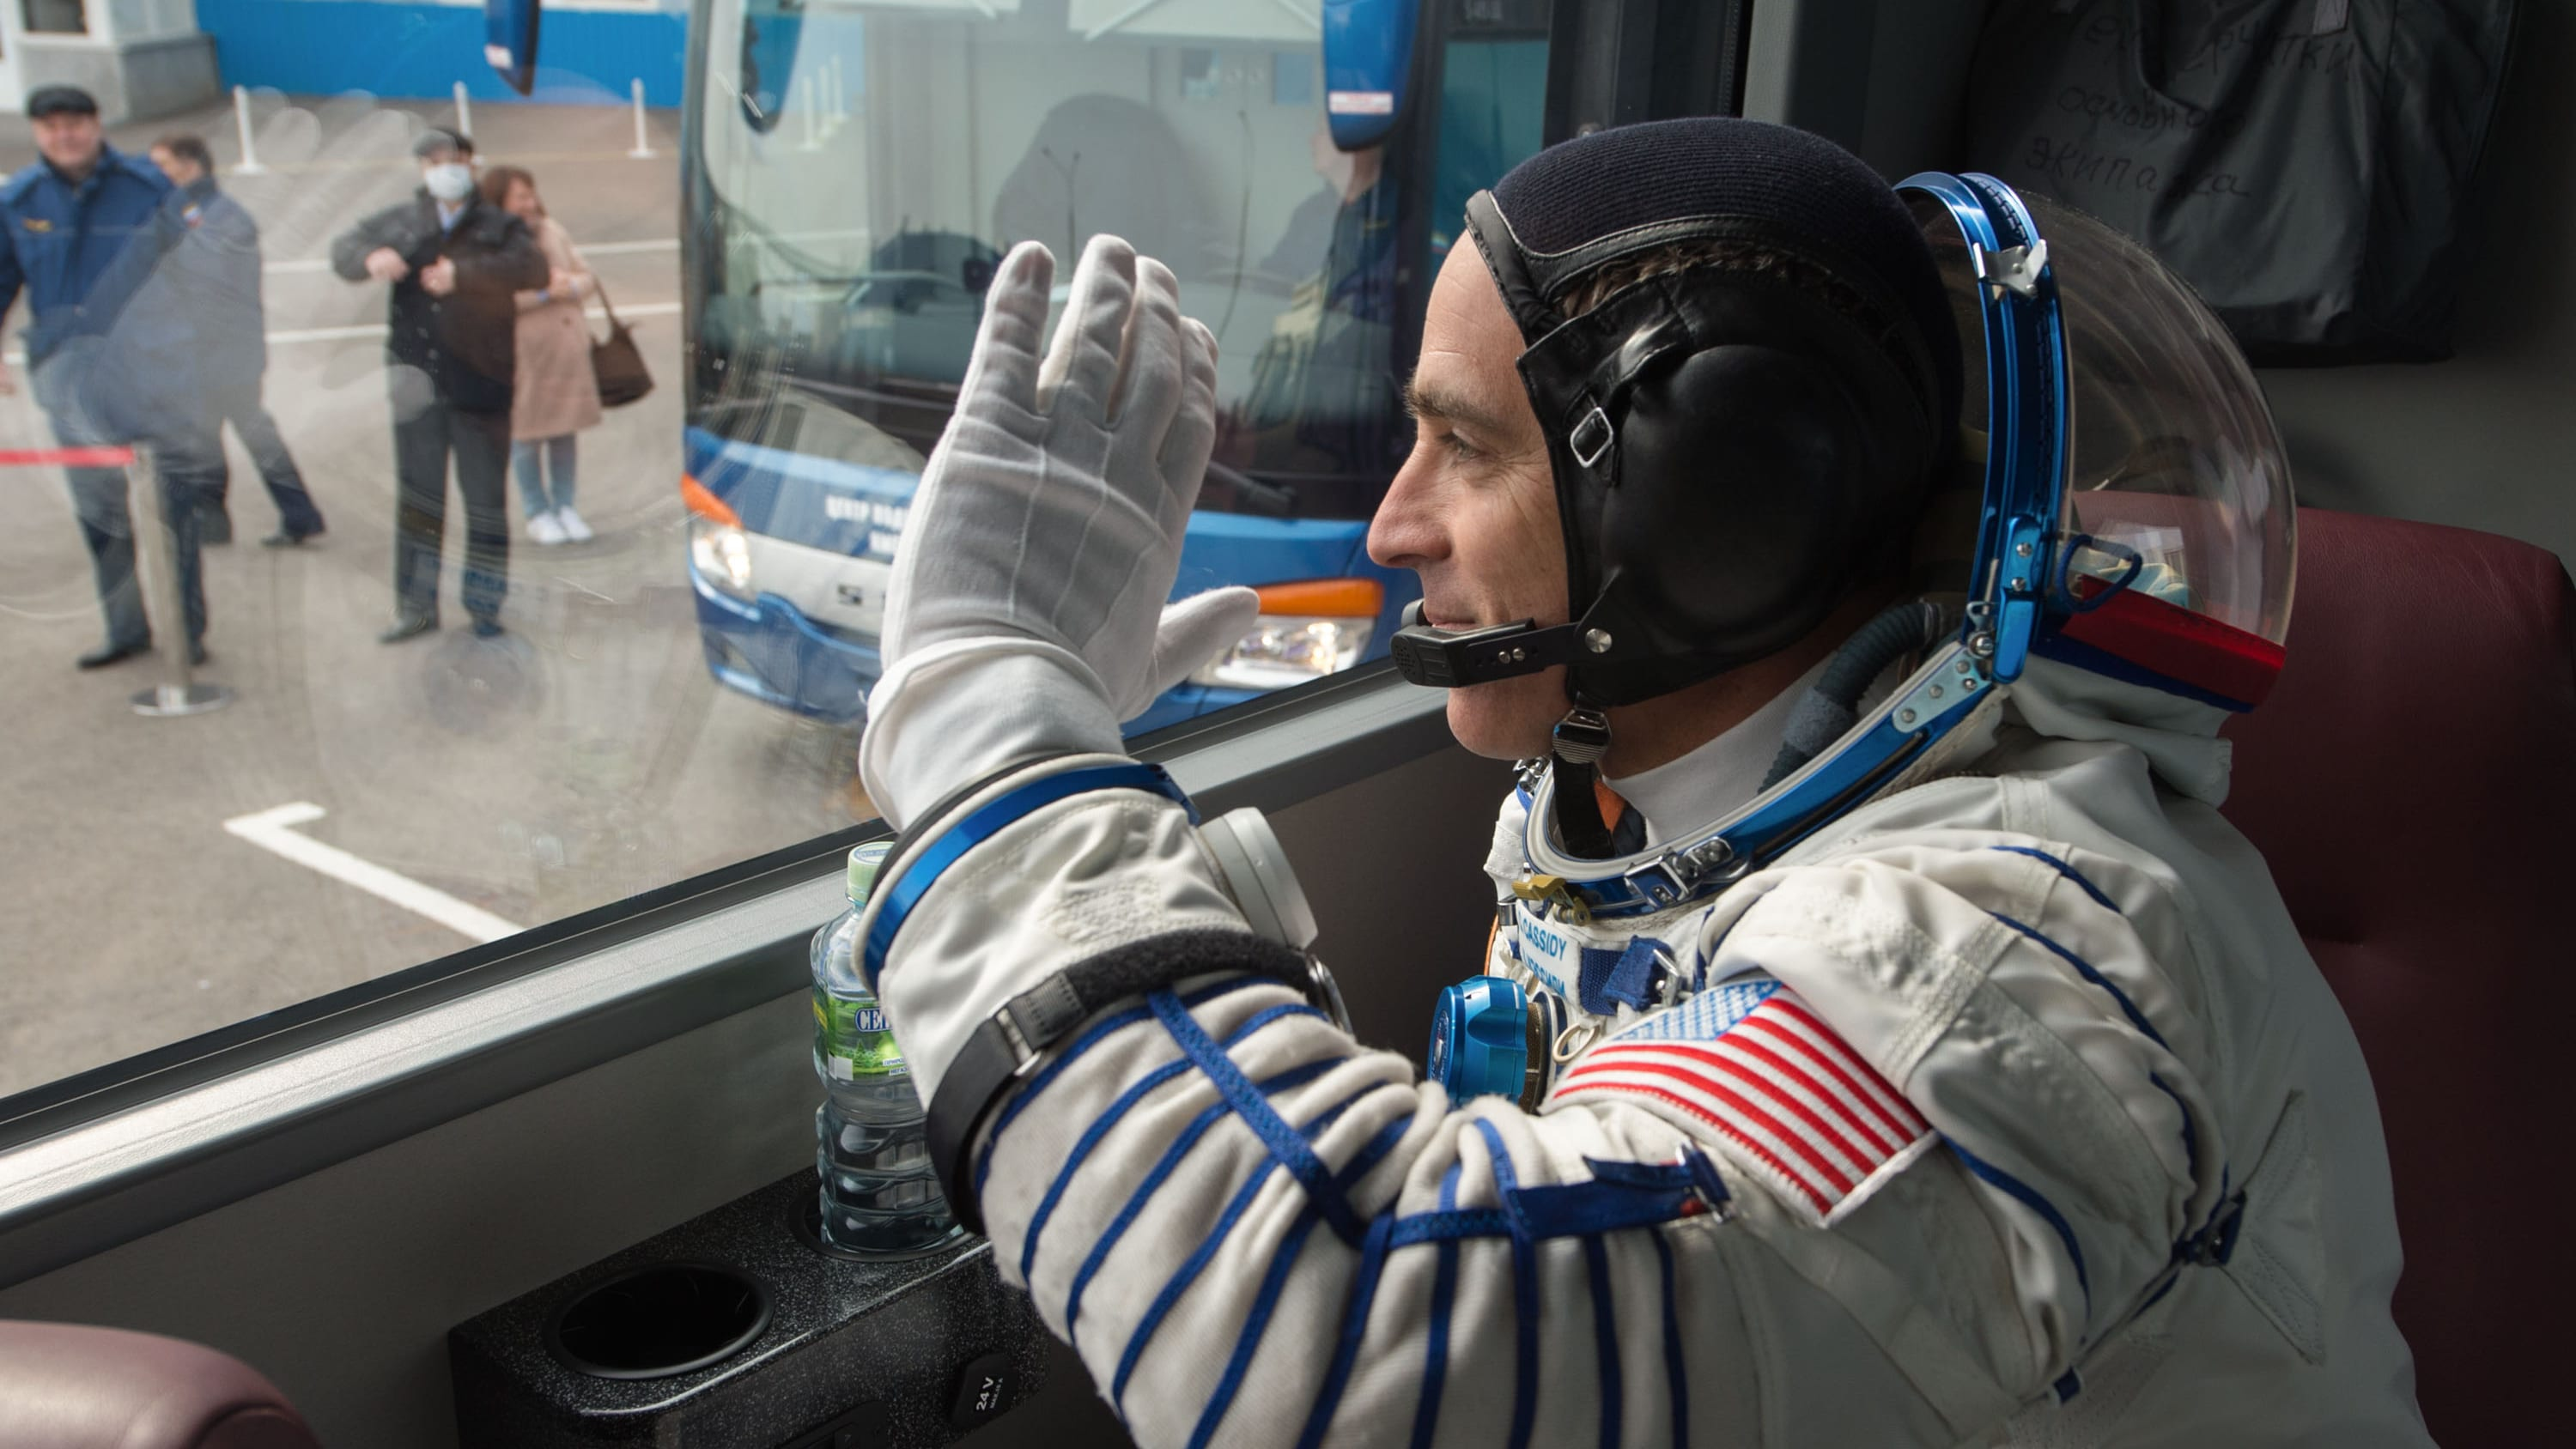 AMONG THE STARS - Expedition 63 crewmember Chris Cassidy of NASA waves farewell as he, Anatoly Ivanishin, and Ivan Vagner of Roscosmos depart building 254 via bus for the launch pad, Thursday, April 9, 2020 at the Baikonur Cosmodrome in Kazakhstan. A few hours later, they lifted off on a Soyuz rocket for a six-and-a-half month mission on the International Space Station. (NASA/GCTC/Andrey Shelepin) CHRIS CASSIDY